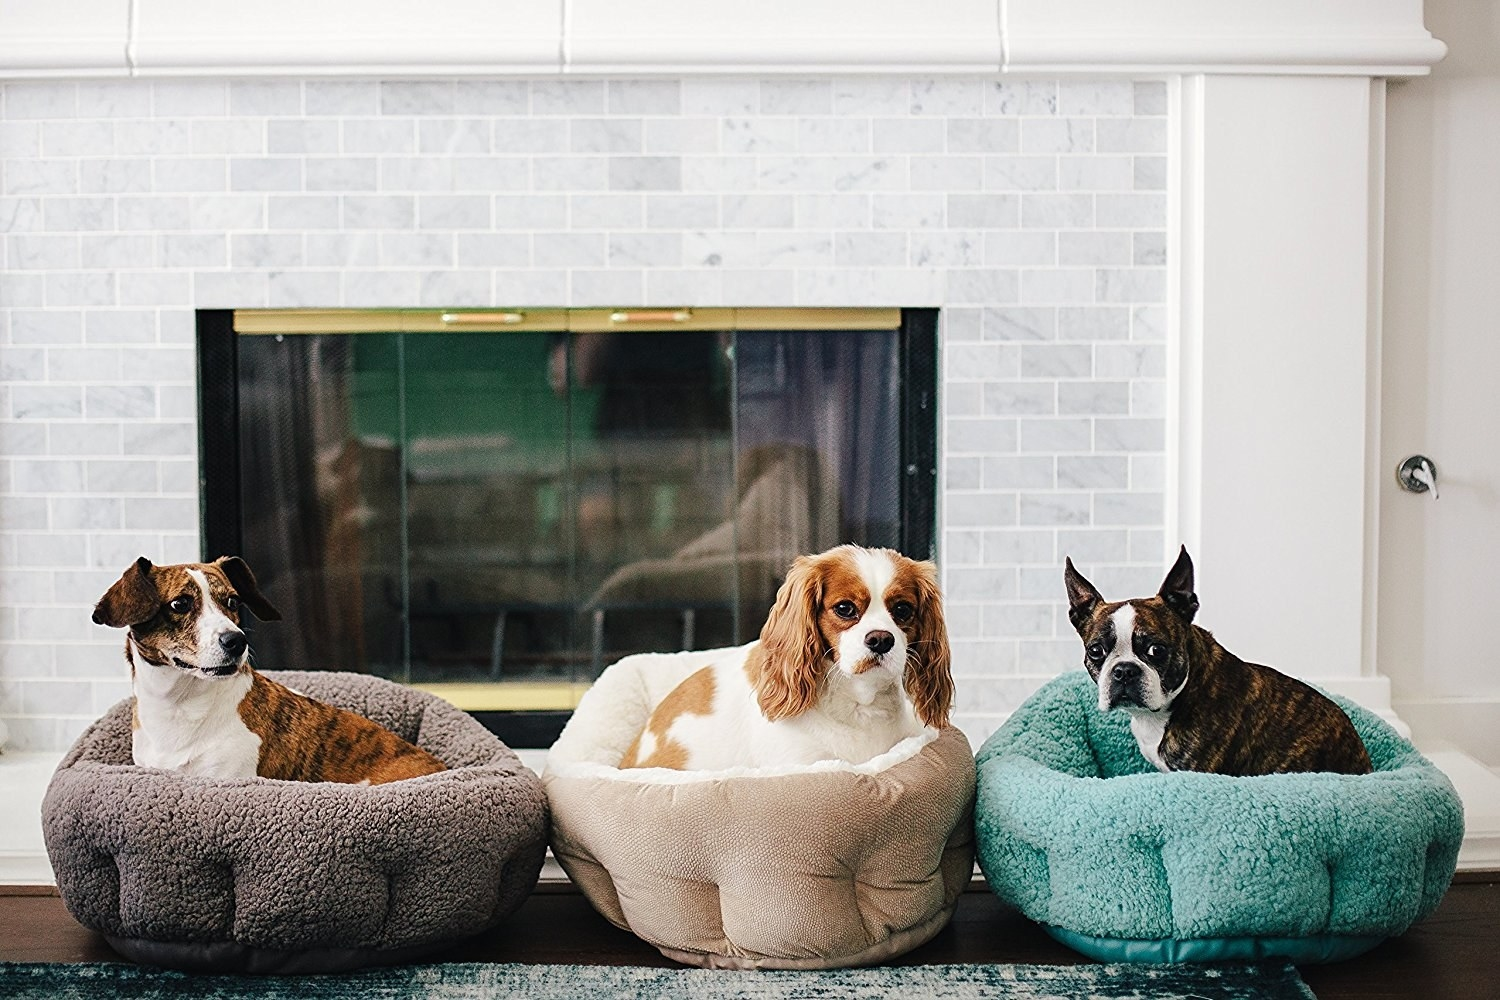 A lifestyle shot of three different medium-to-small dogs sitting in the cushy beds. The sides of the beds come up and hug around each dog as they sit.